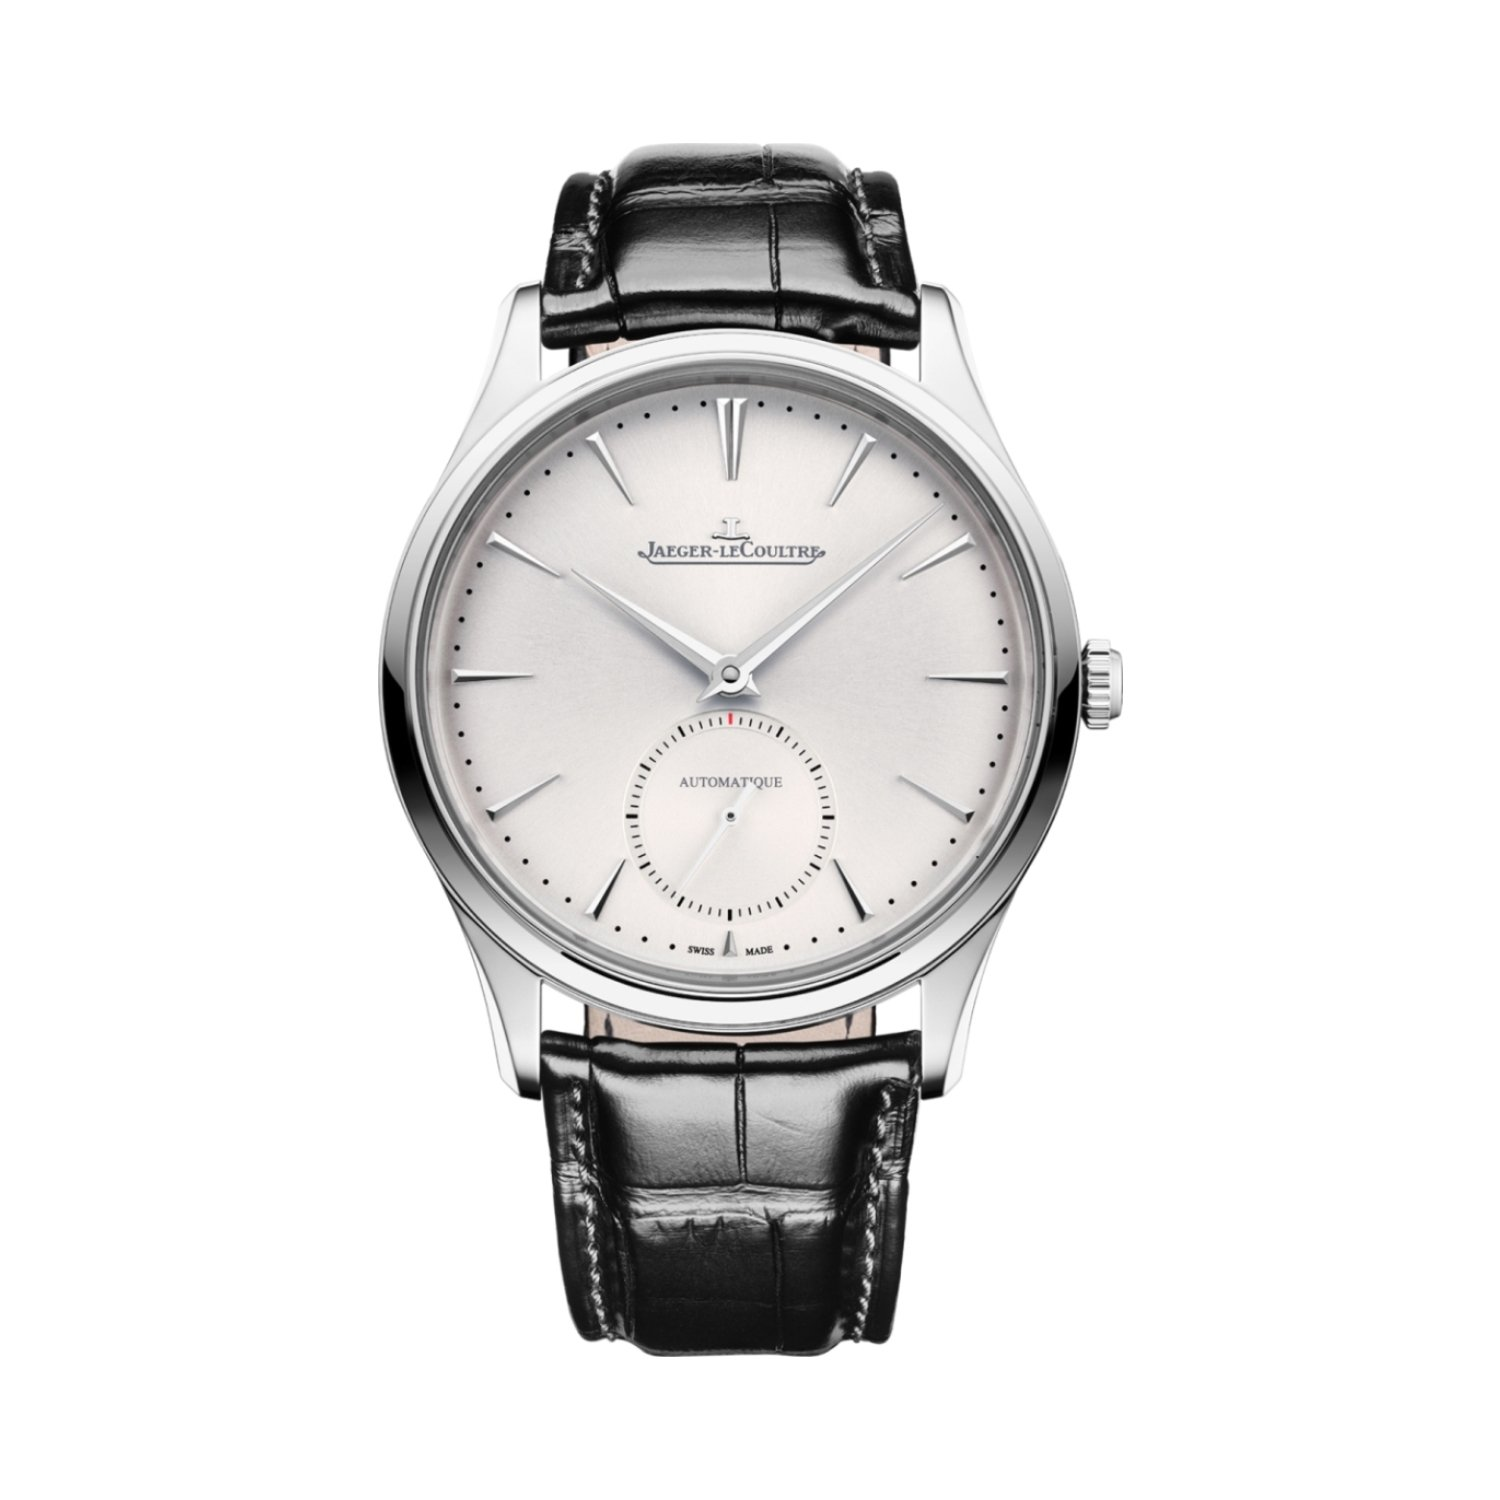 Montre Jaeger-LeCoultre Master Ultra Thin Small Seconds vue 1